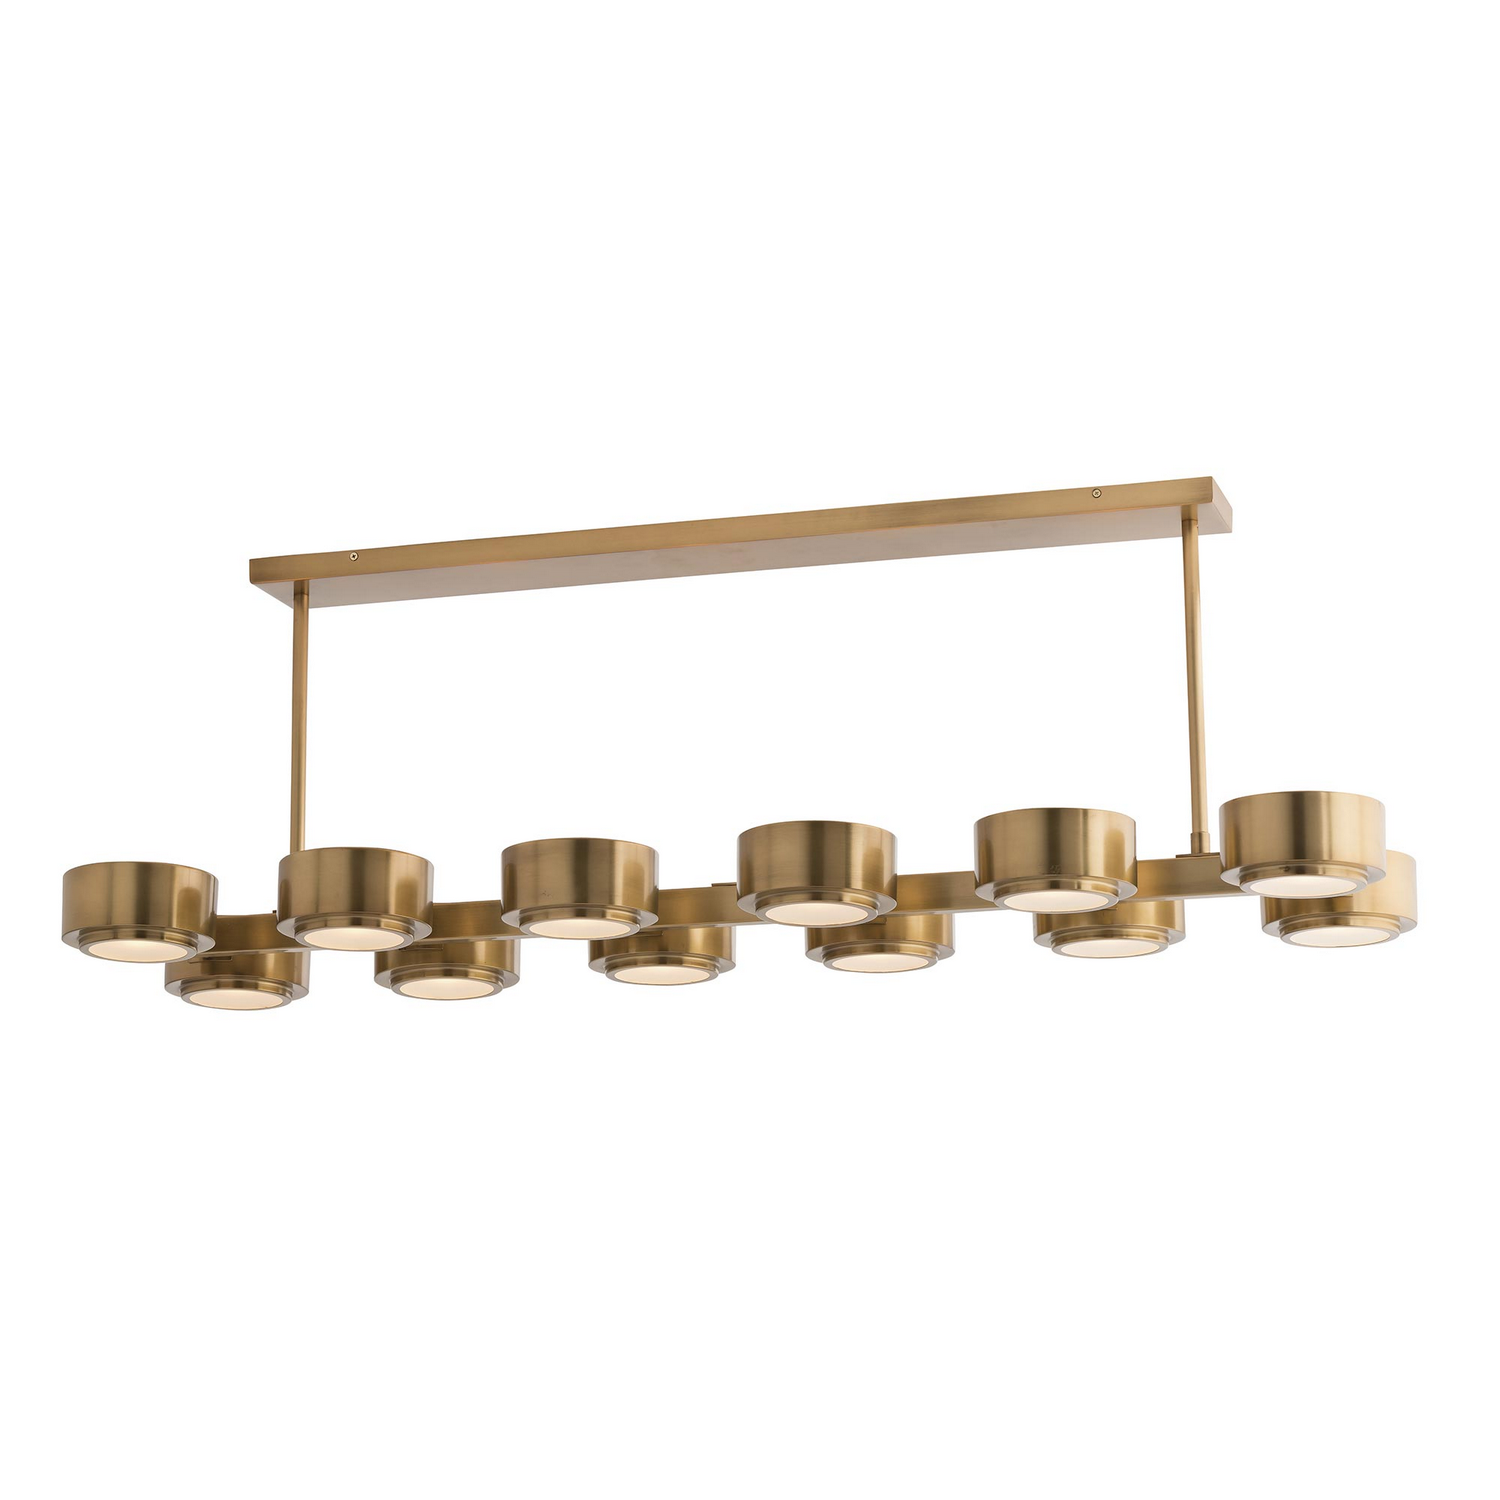 Chandelier from the Hawkins collection by Arteriors 89042